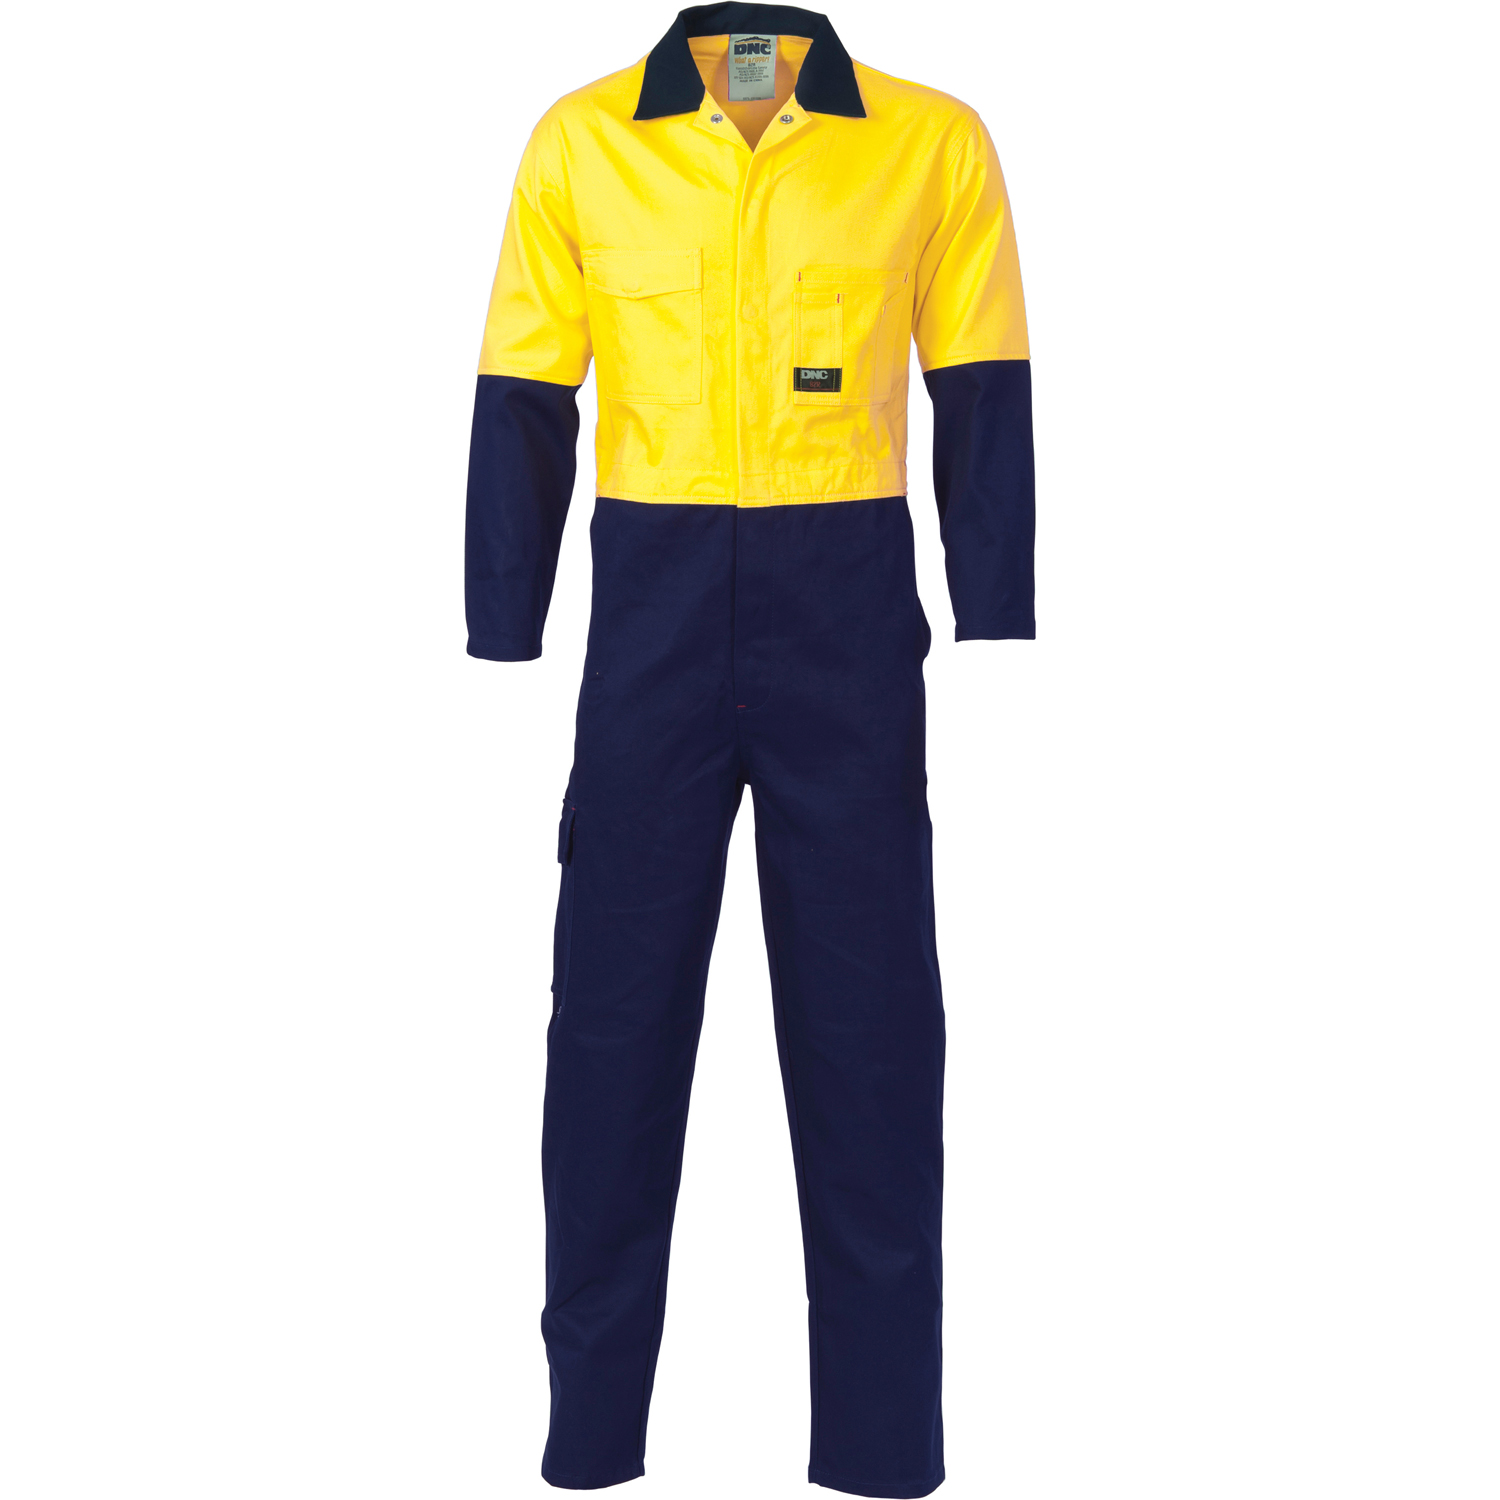 DNC 3851-311gsm HiVis Two Tone Cotton Drill Coverall 77-132S